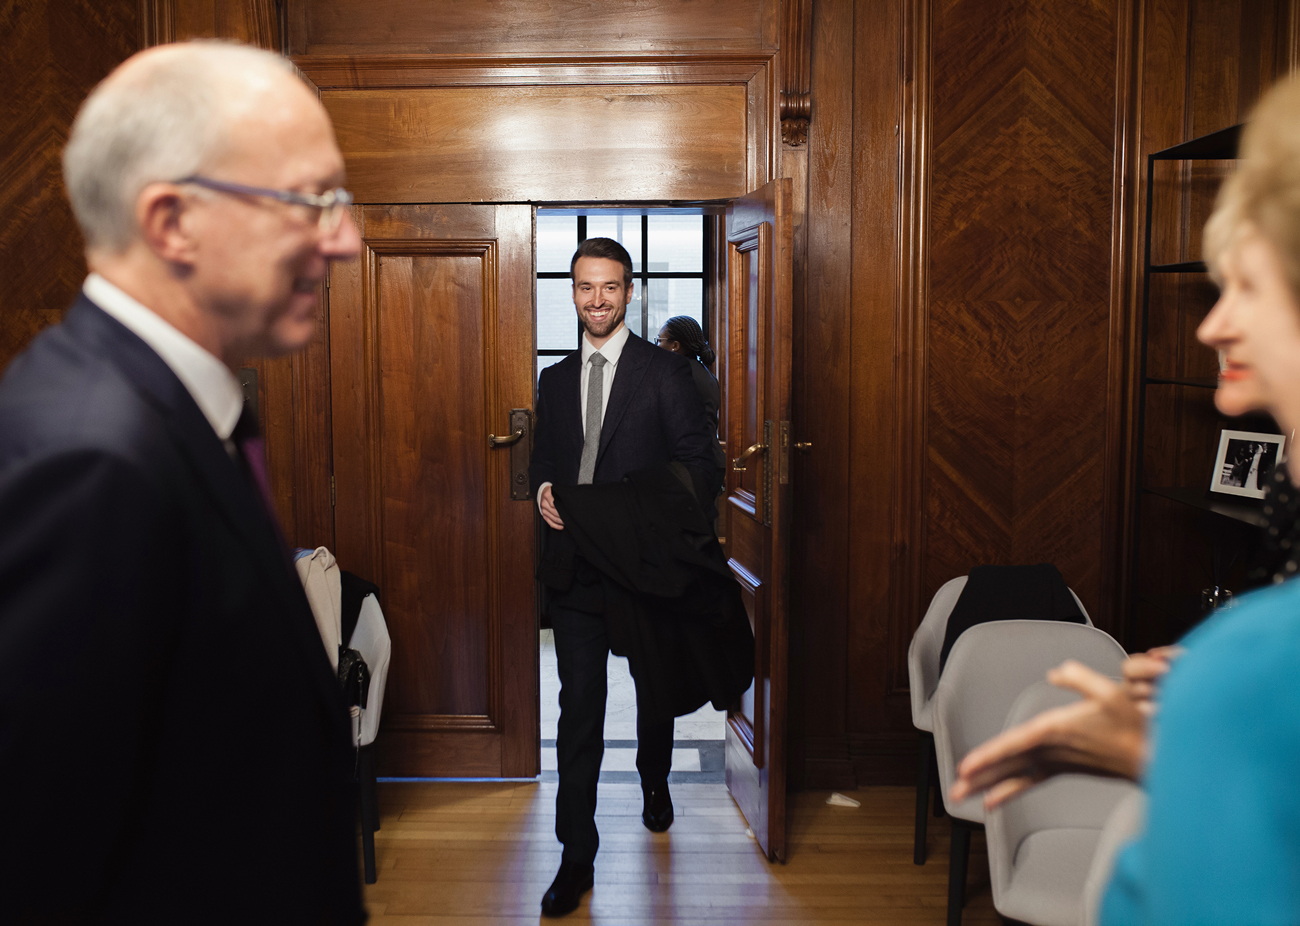 Westminster wedding at Marylebone town hall